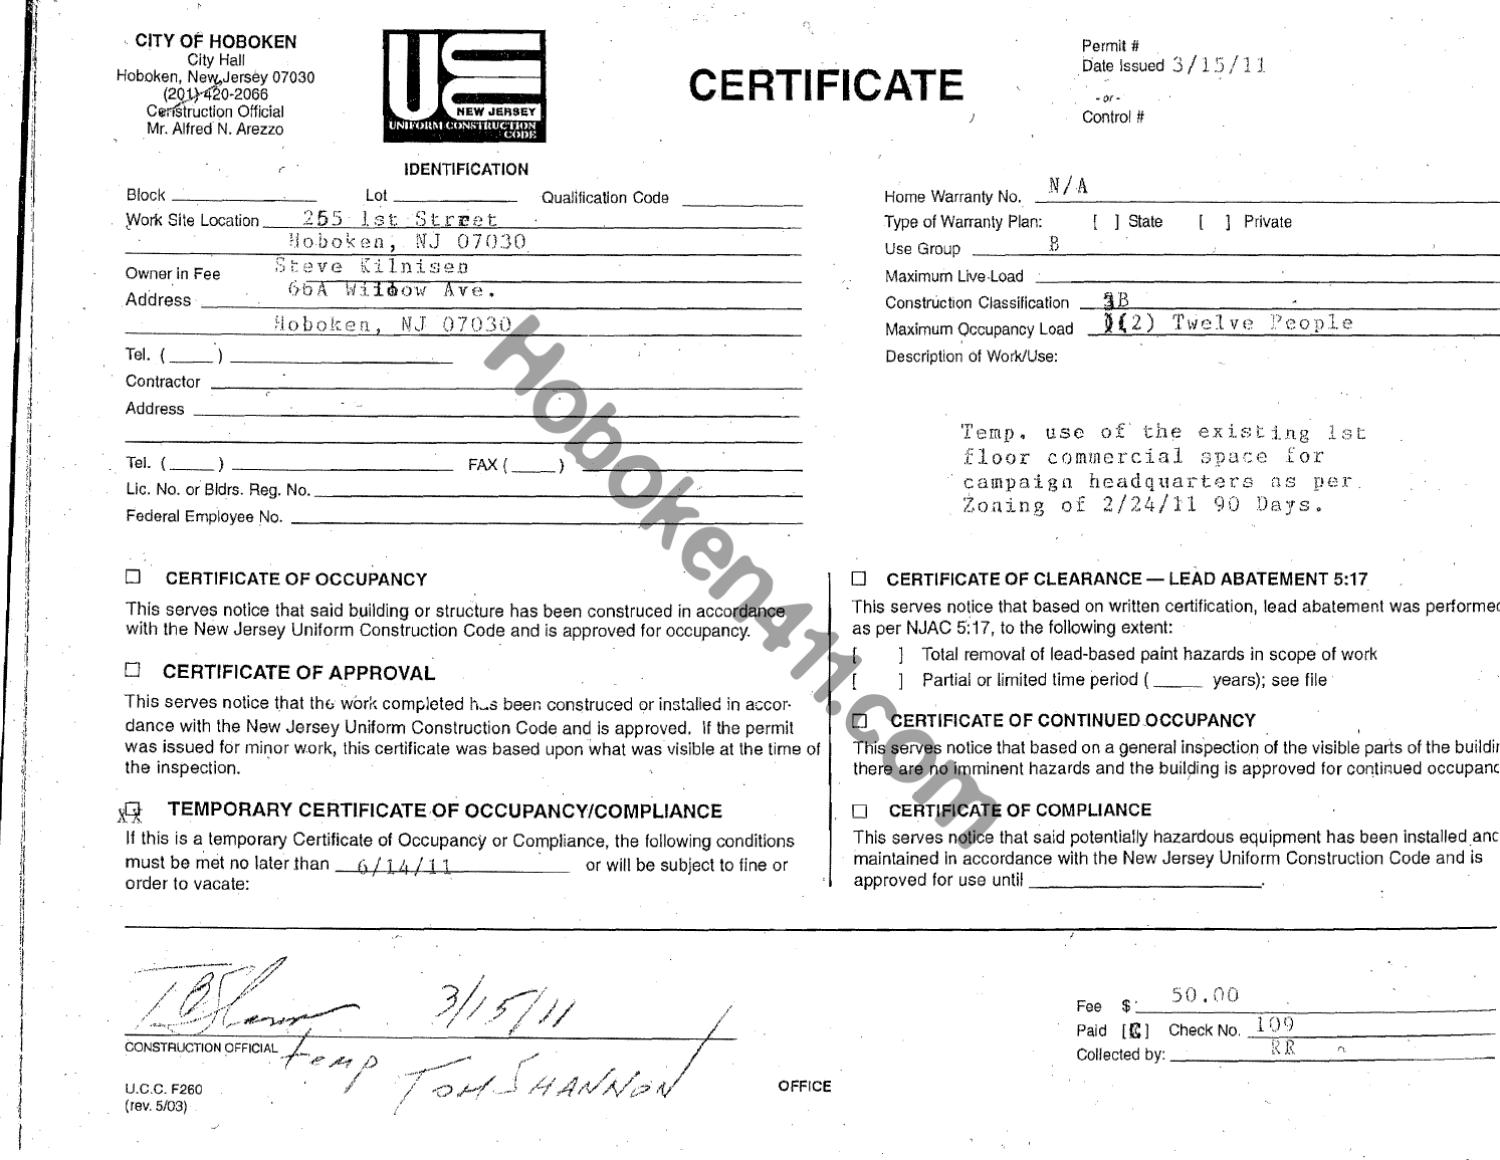 Occupancy Certificate March 15 Kurta Pinchevsky Hob By Perry